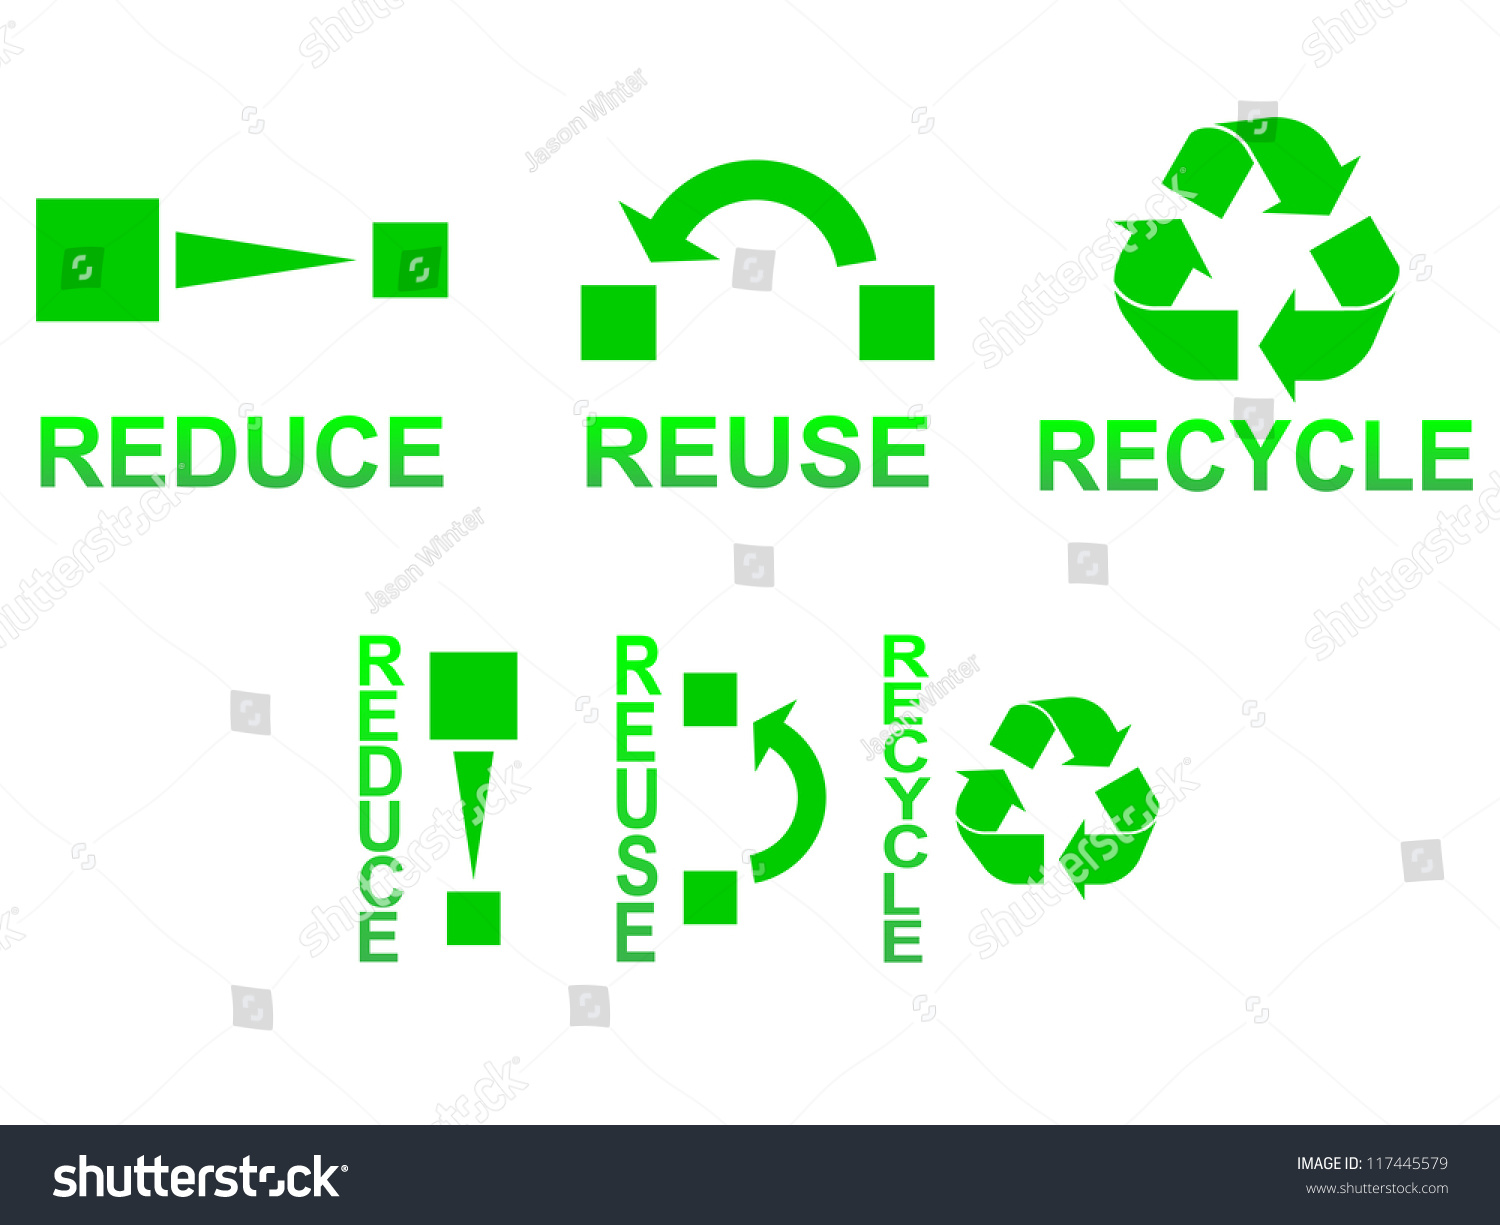 Renew Reuse Recycle Worksheets